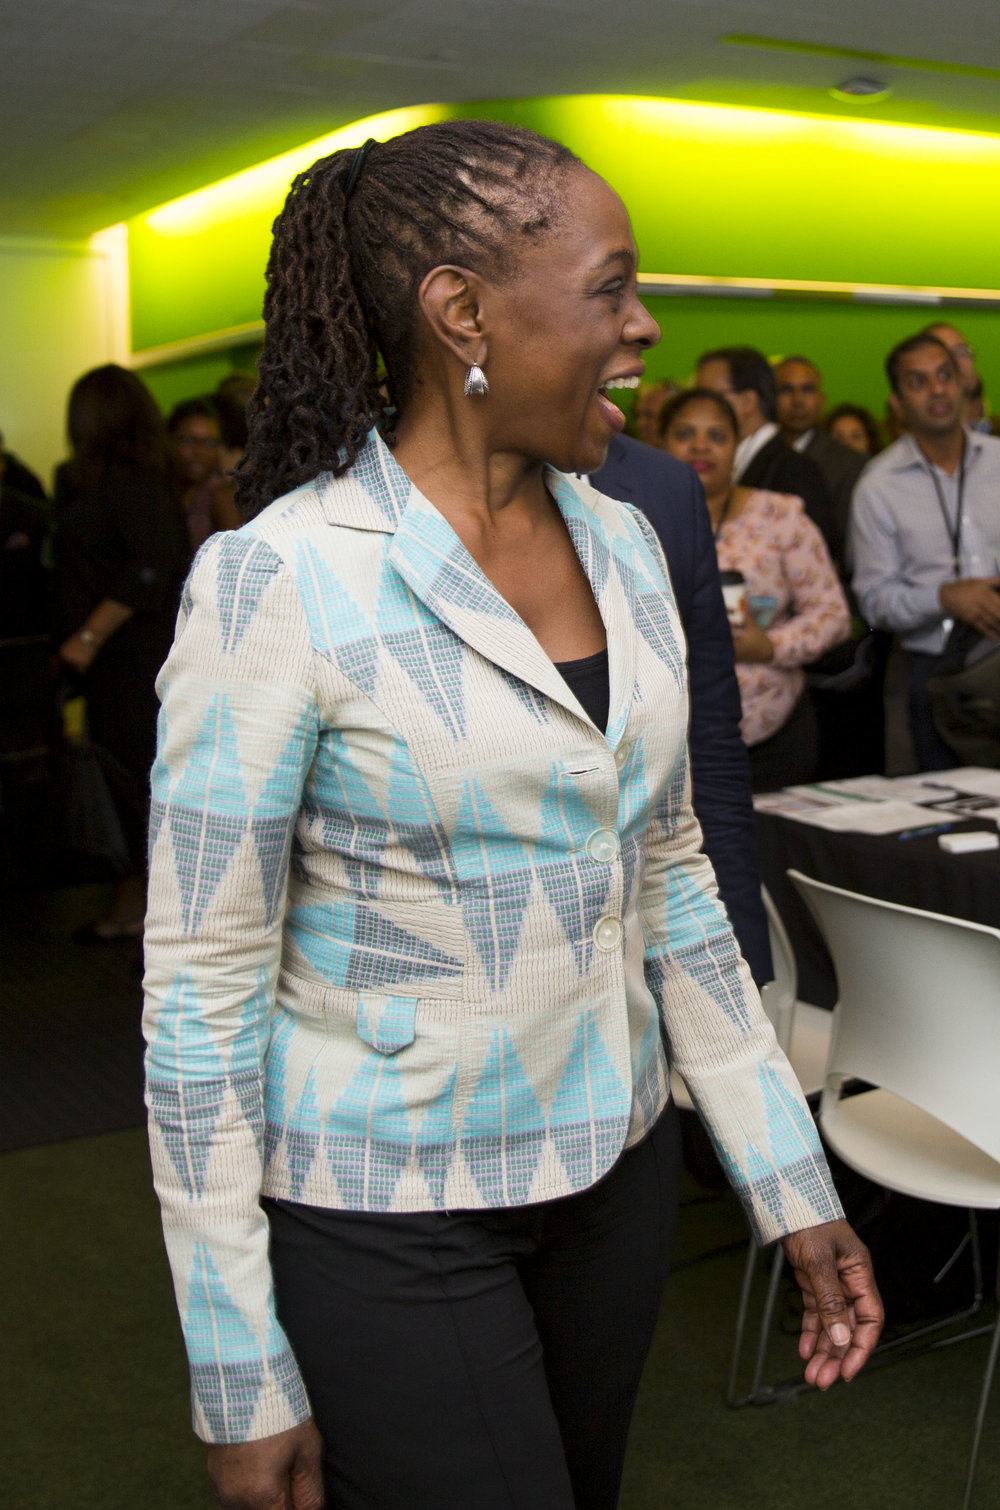 NYC FIRST LADY, CHIRLANE MCCRAY